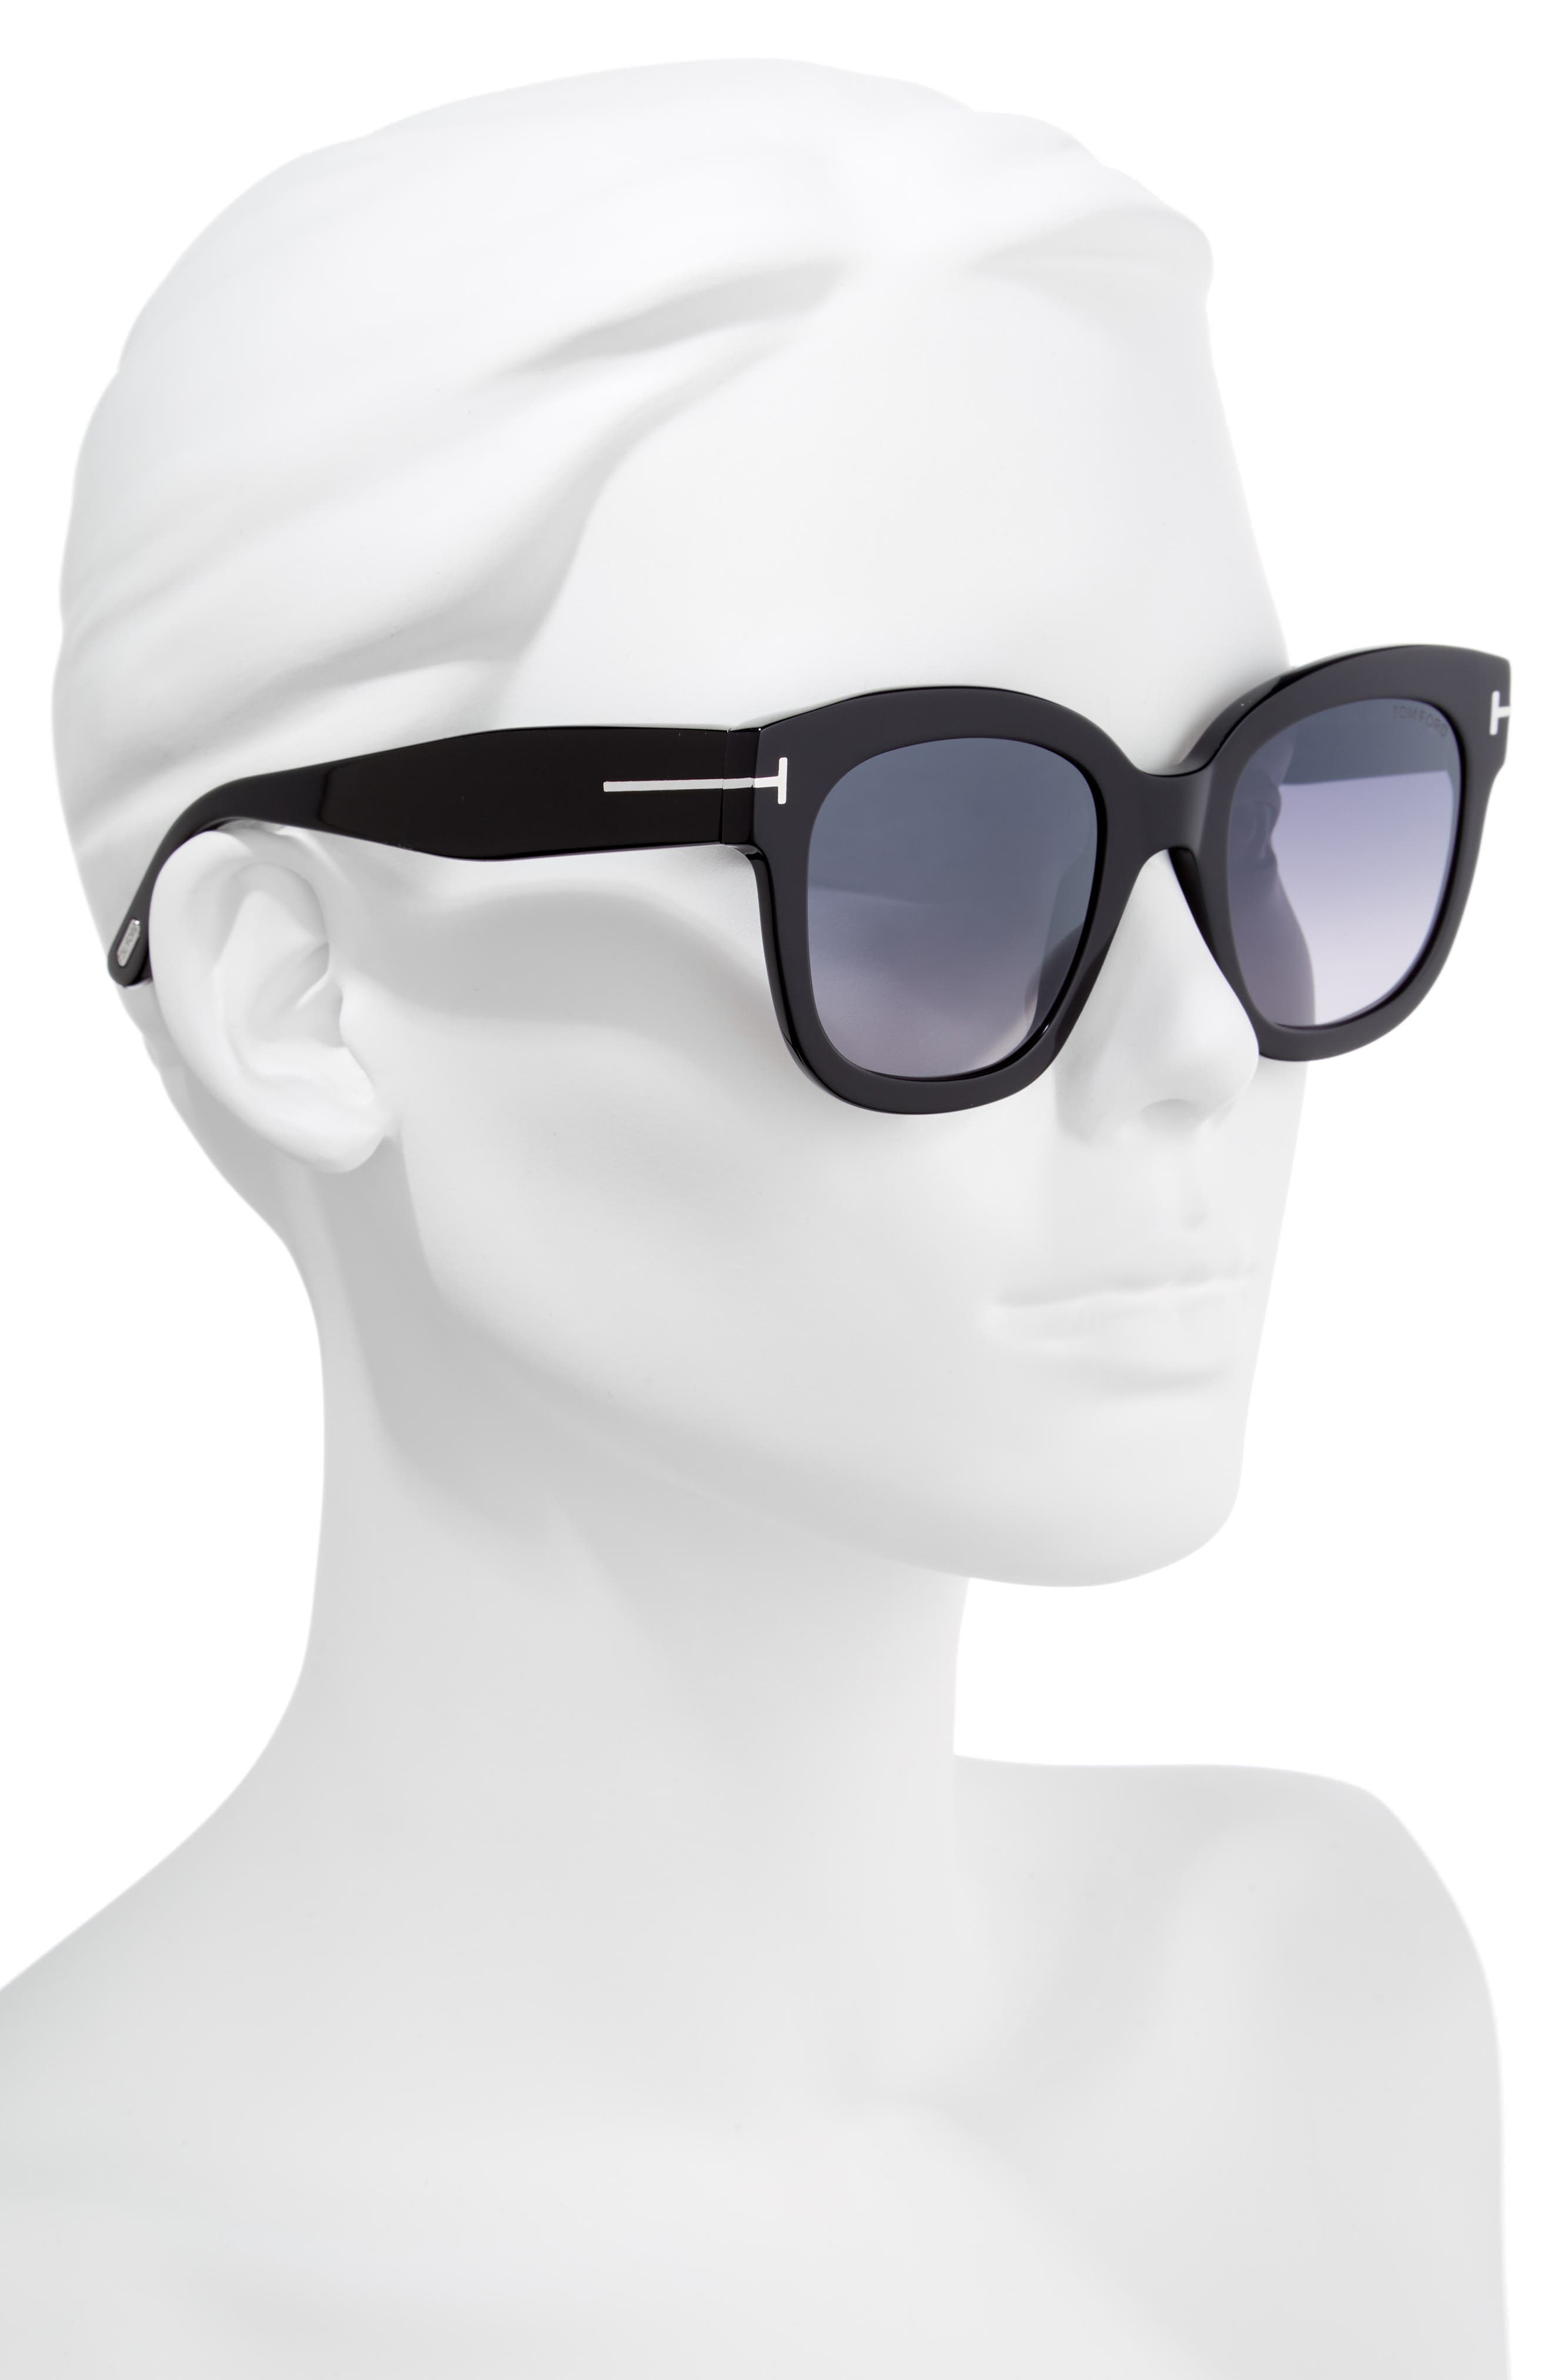 Beatrix 52mm Sunglasses,                             Alternate thumbnail 2, color,                             SHINY BLACK/ SMOKE MIRROR